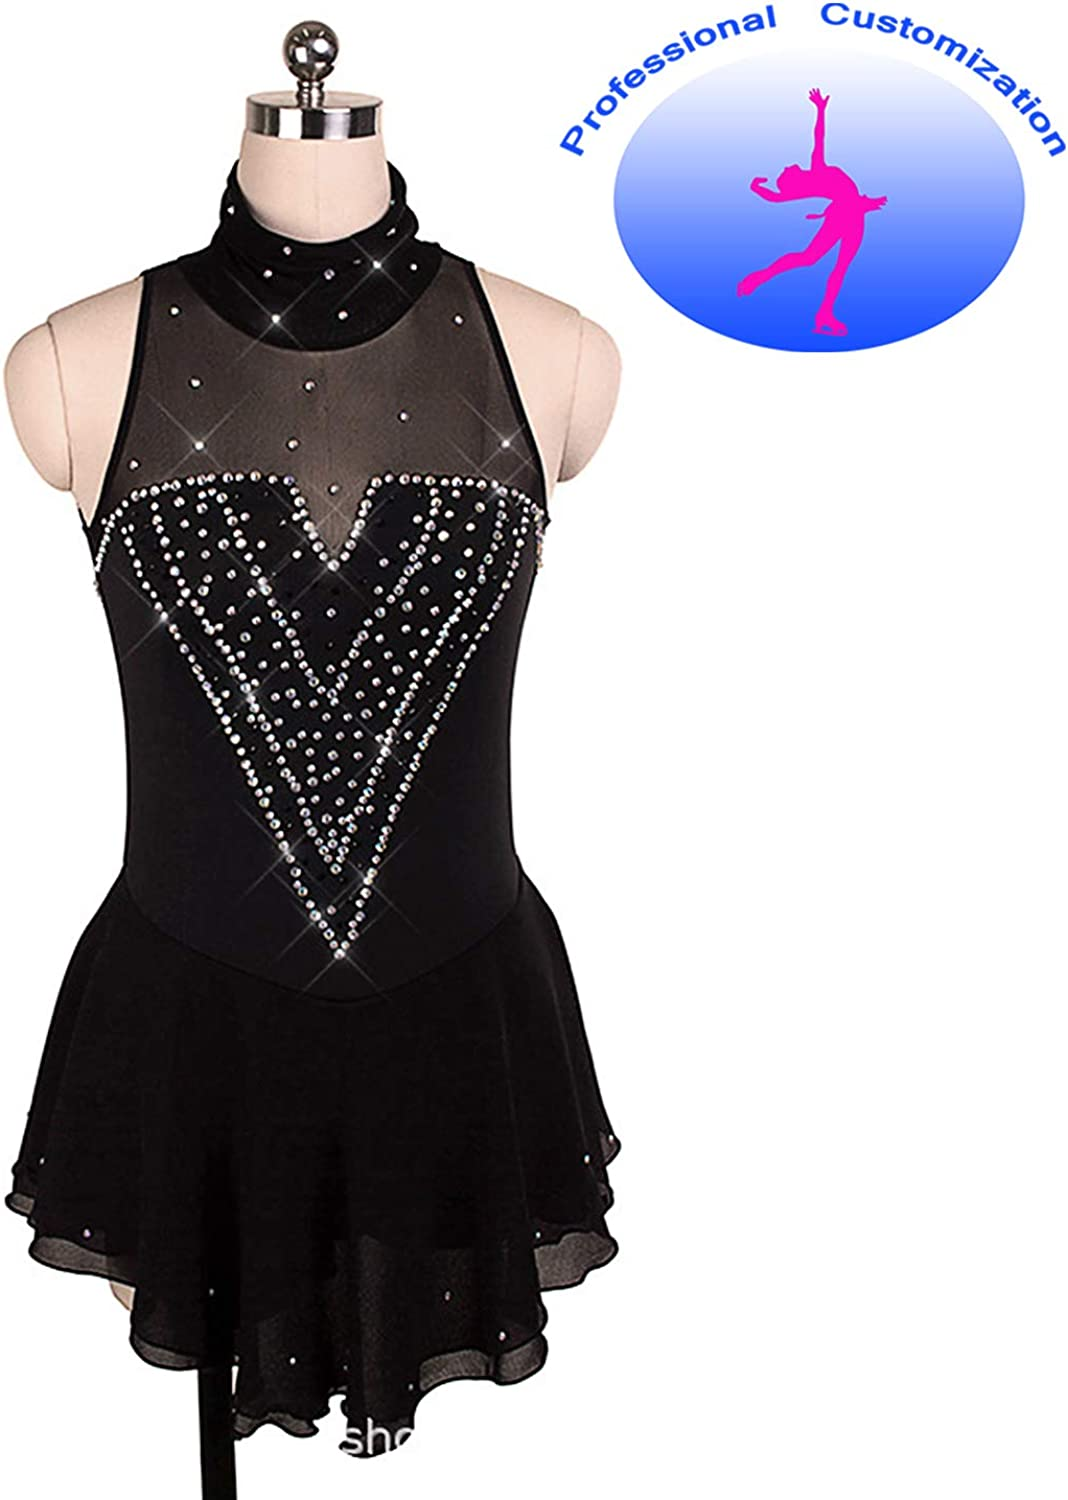 CUIXI Ice Skating Dress Competition Rhythmic Gymnastics Leotard for Girls and Women Handmade Figure Skating Professional Competition, Sexy Comfortable High Stretch Nylon Sleeveless